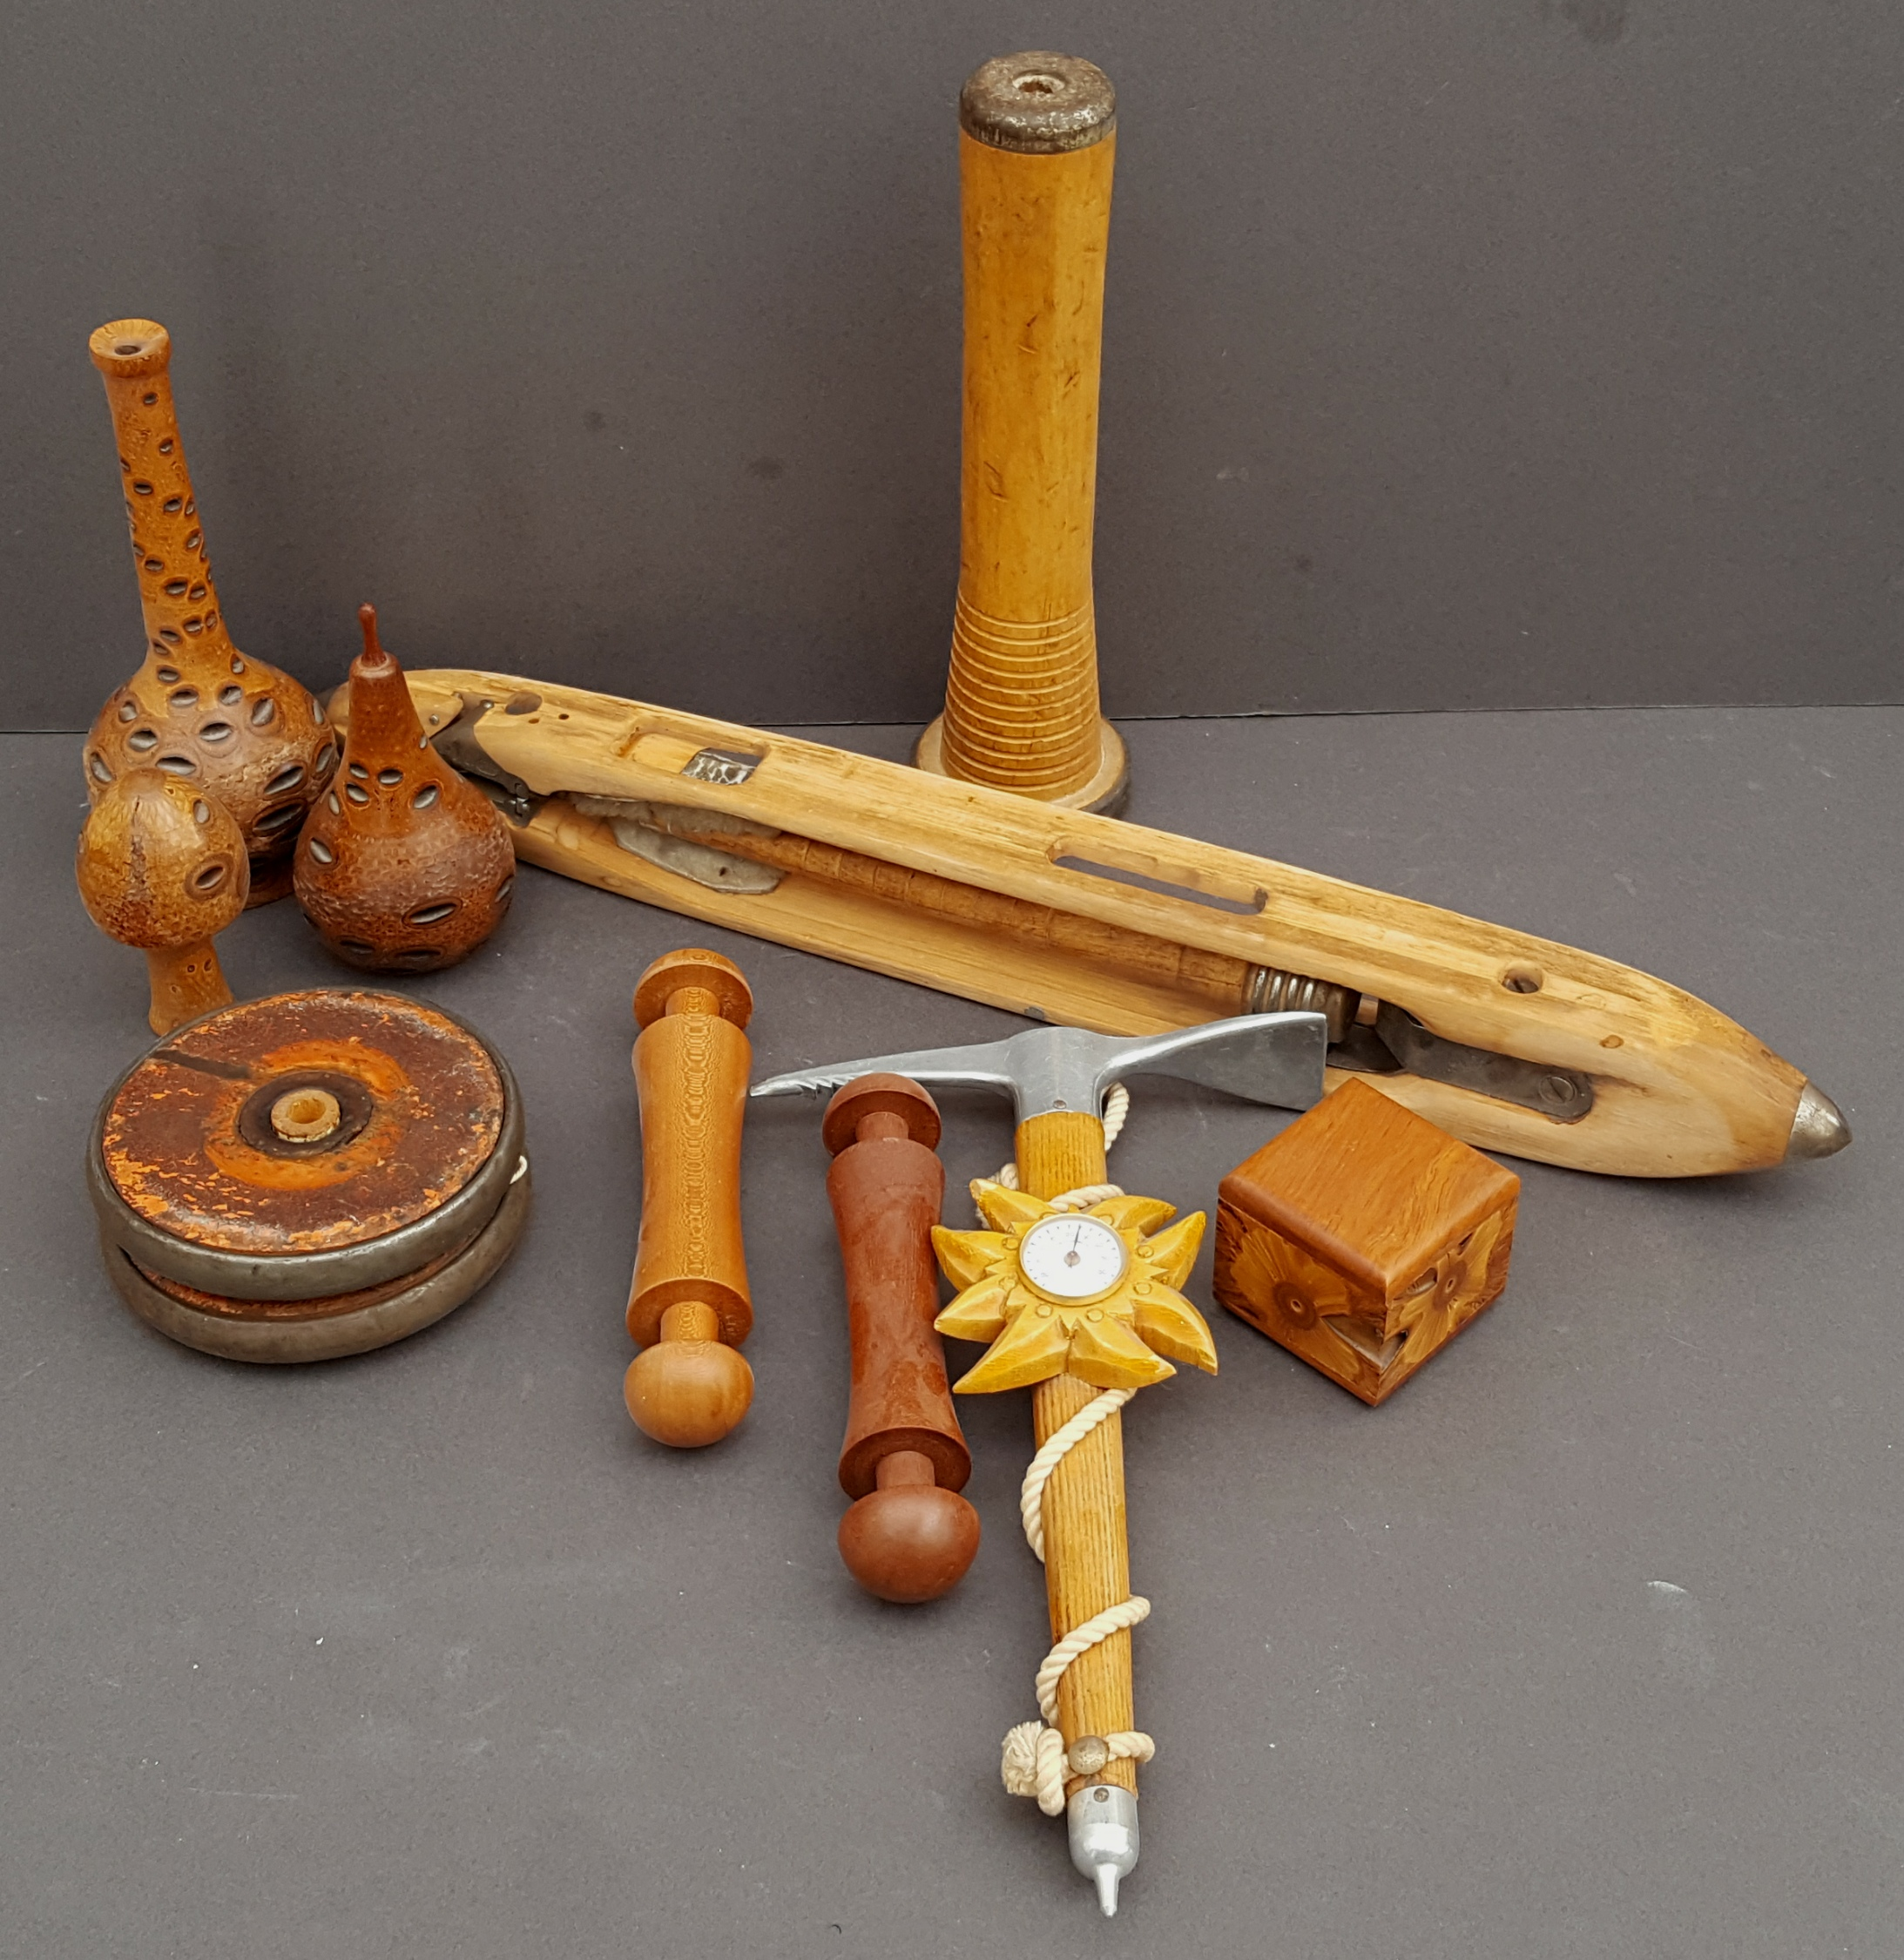 Lot 21 - Antique Vintage Parcel of Treen Includes Ice Axe Barometer & Loom Shuttle NO RESERVE